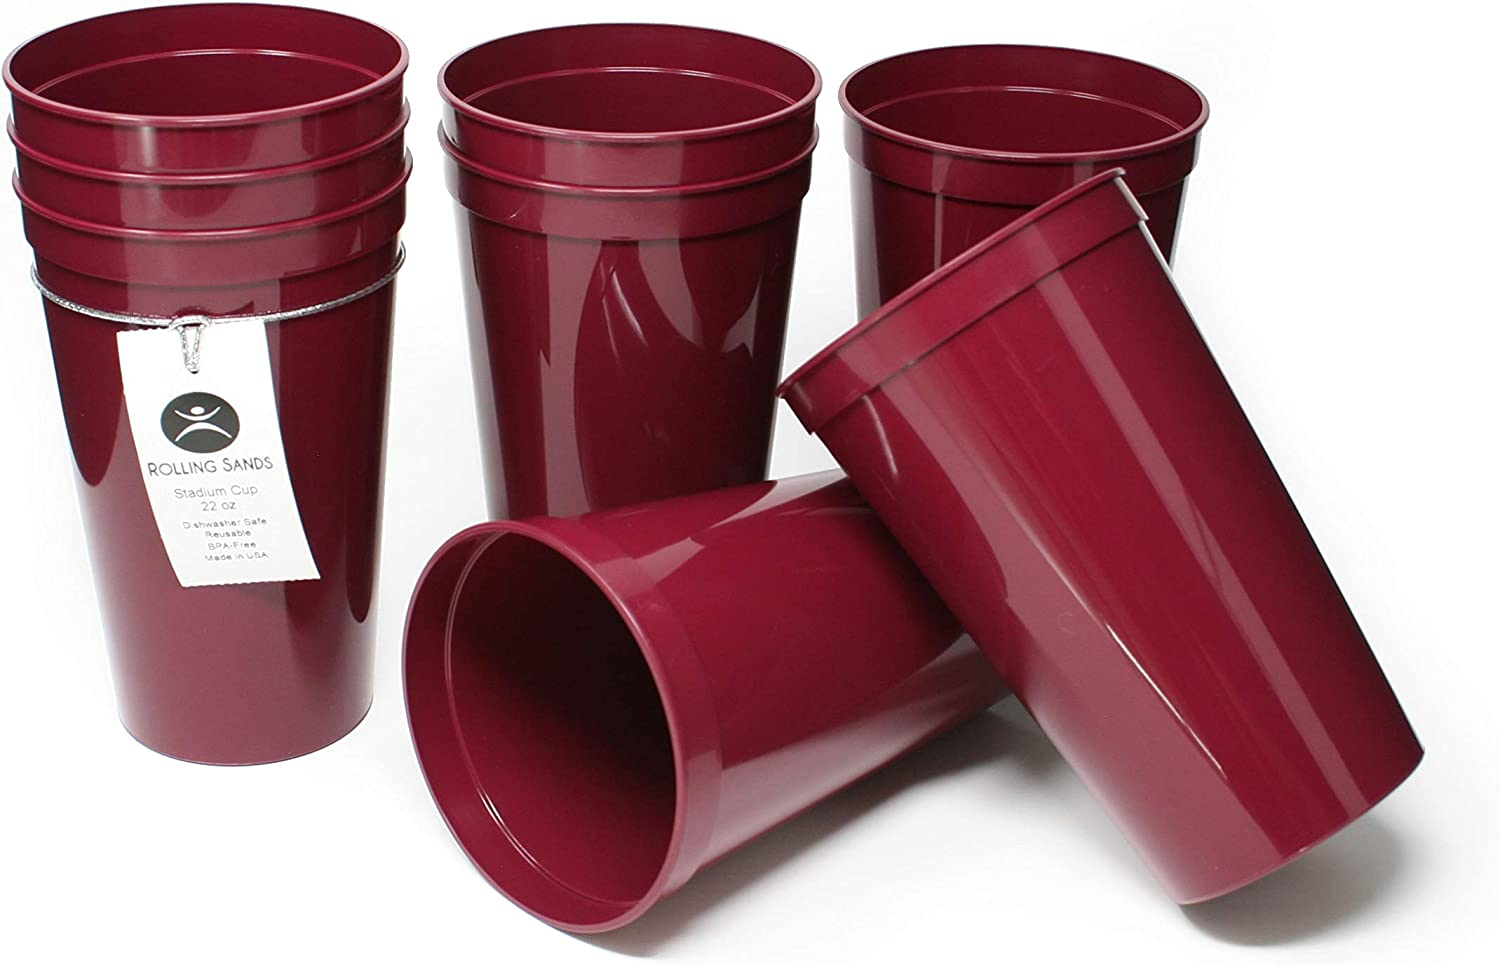 Rolling Sands 22 Ounce Reusable Plastic Stadium Cups Maroon, 8 Pack, Made in USA, BPA-Free Dishwasher Safe Plastic Tumblers